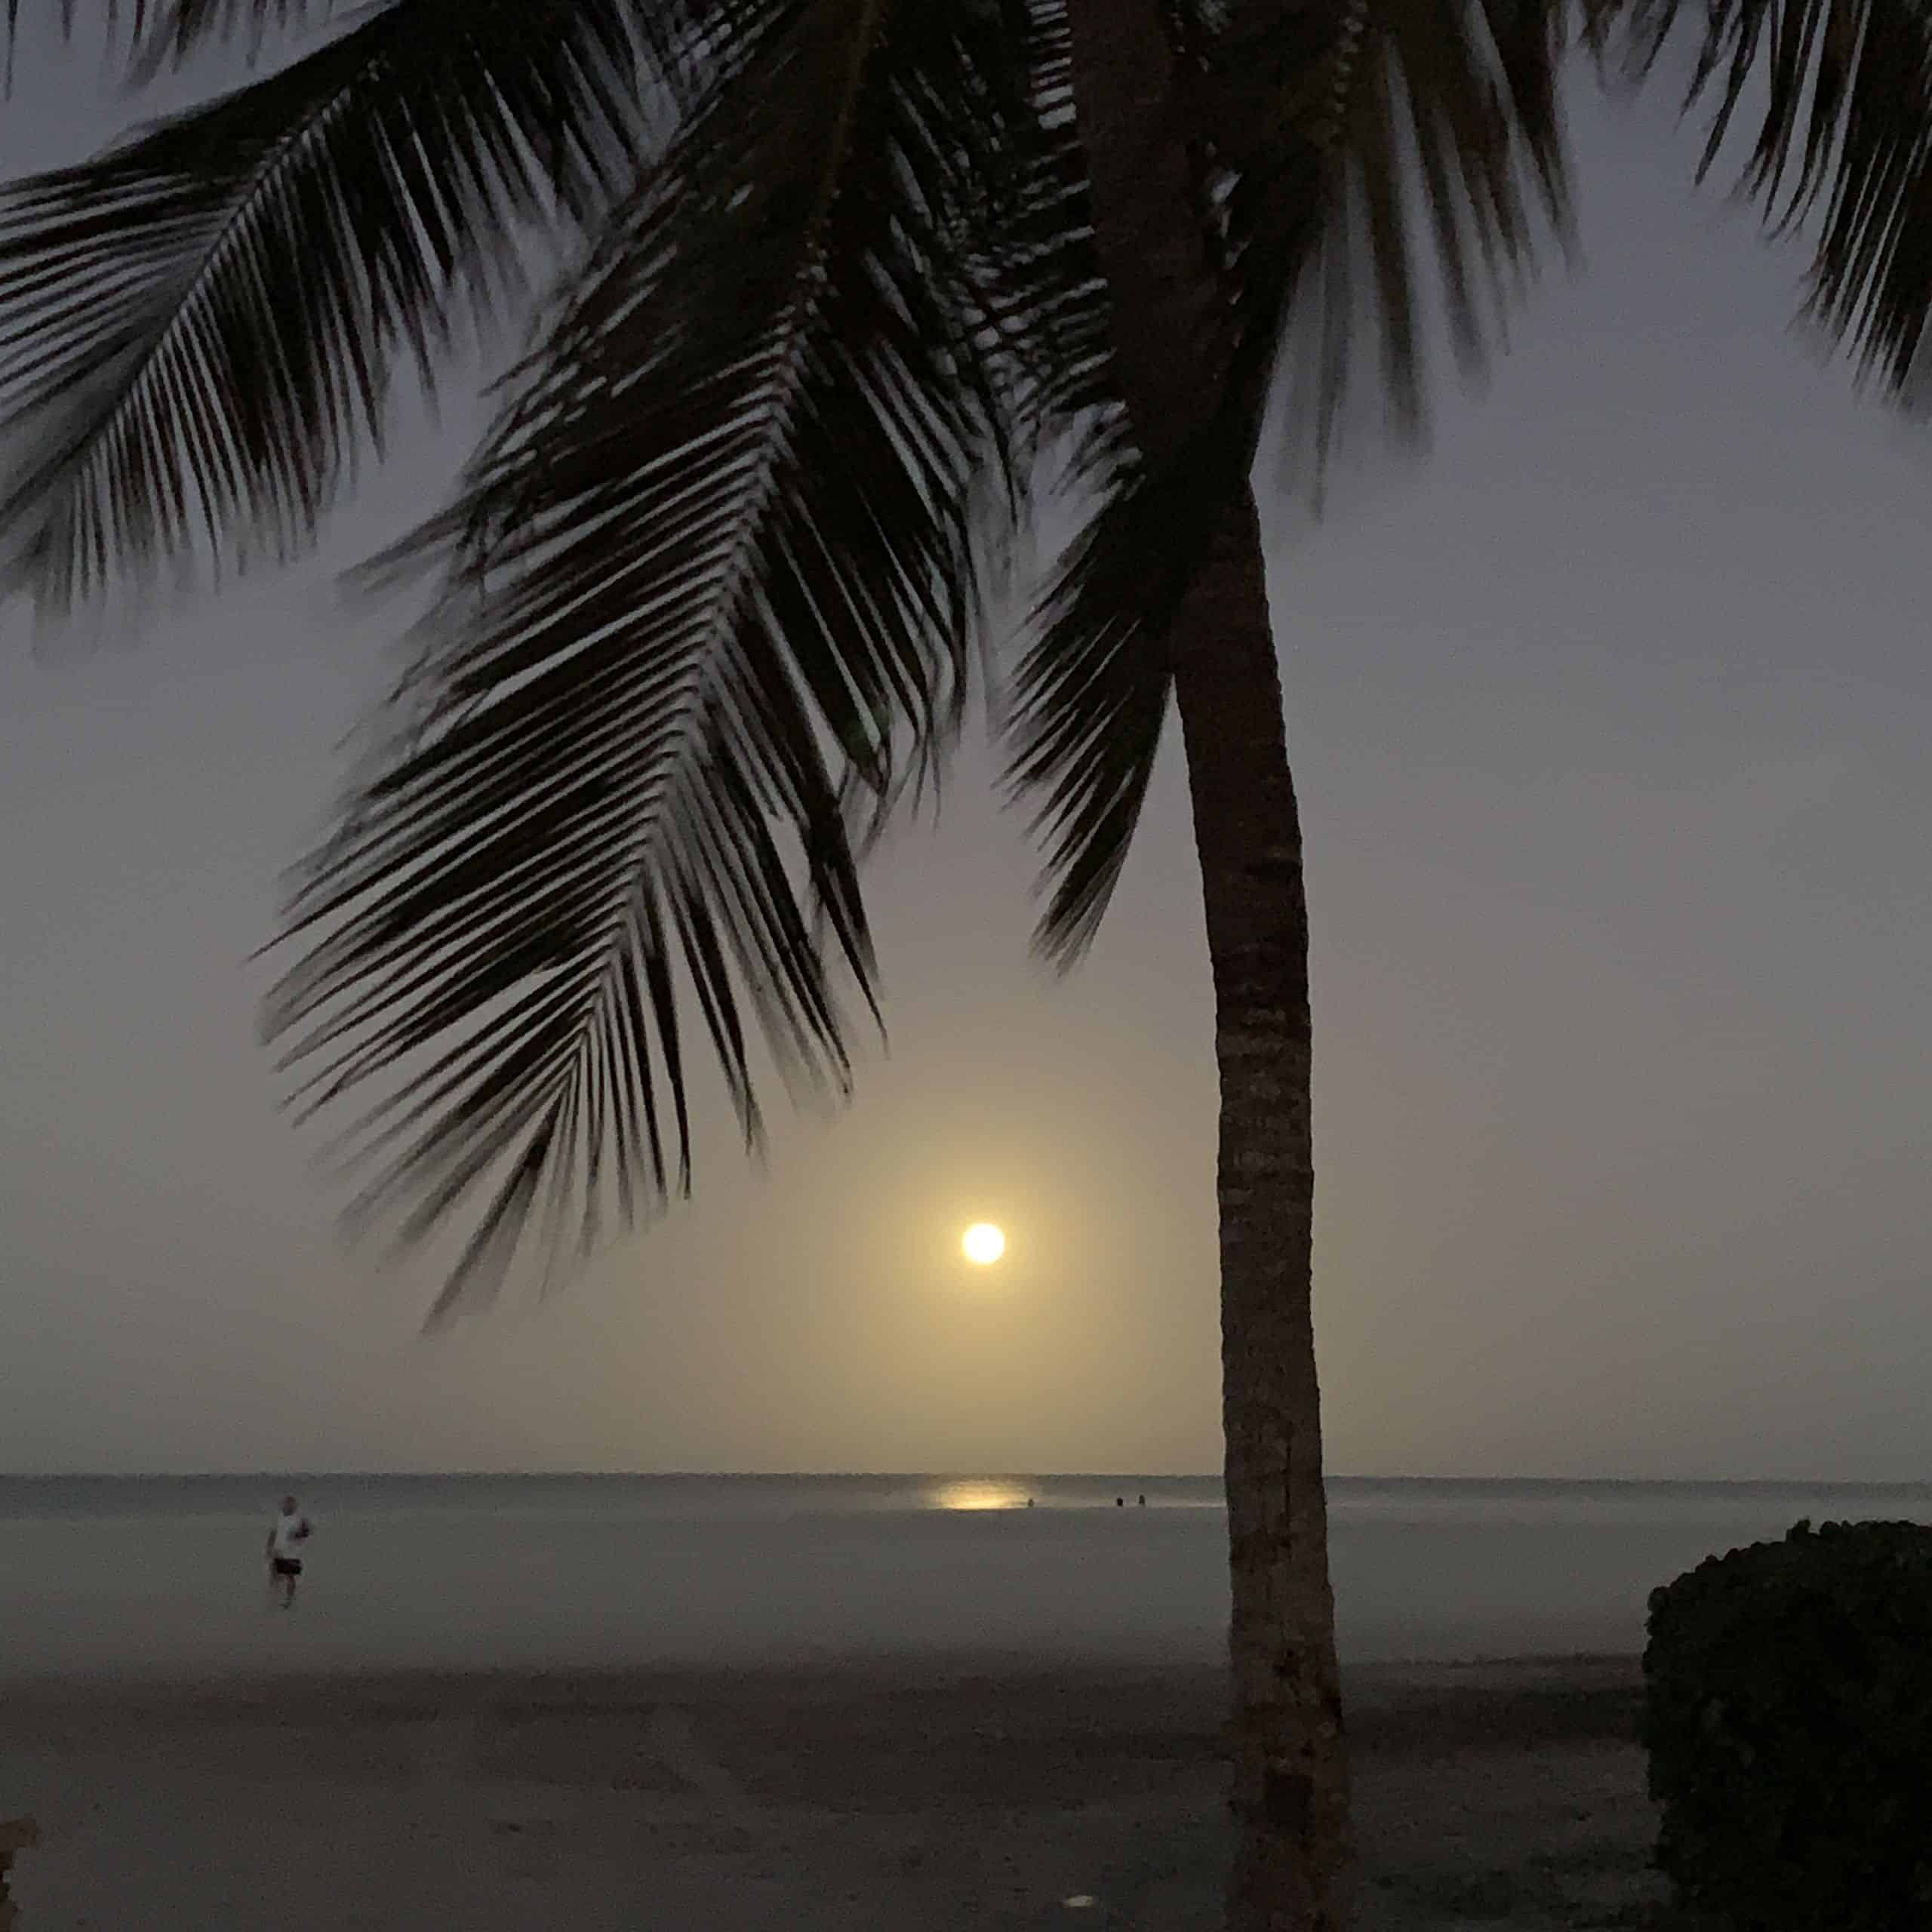 Moonrise over the Gulf of Mexico